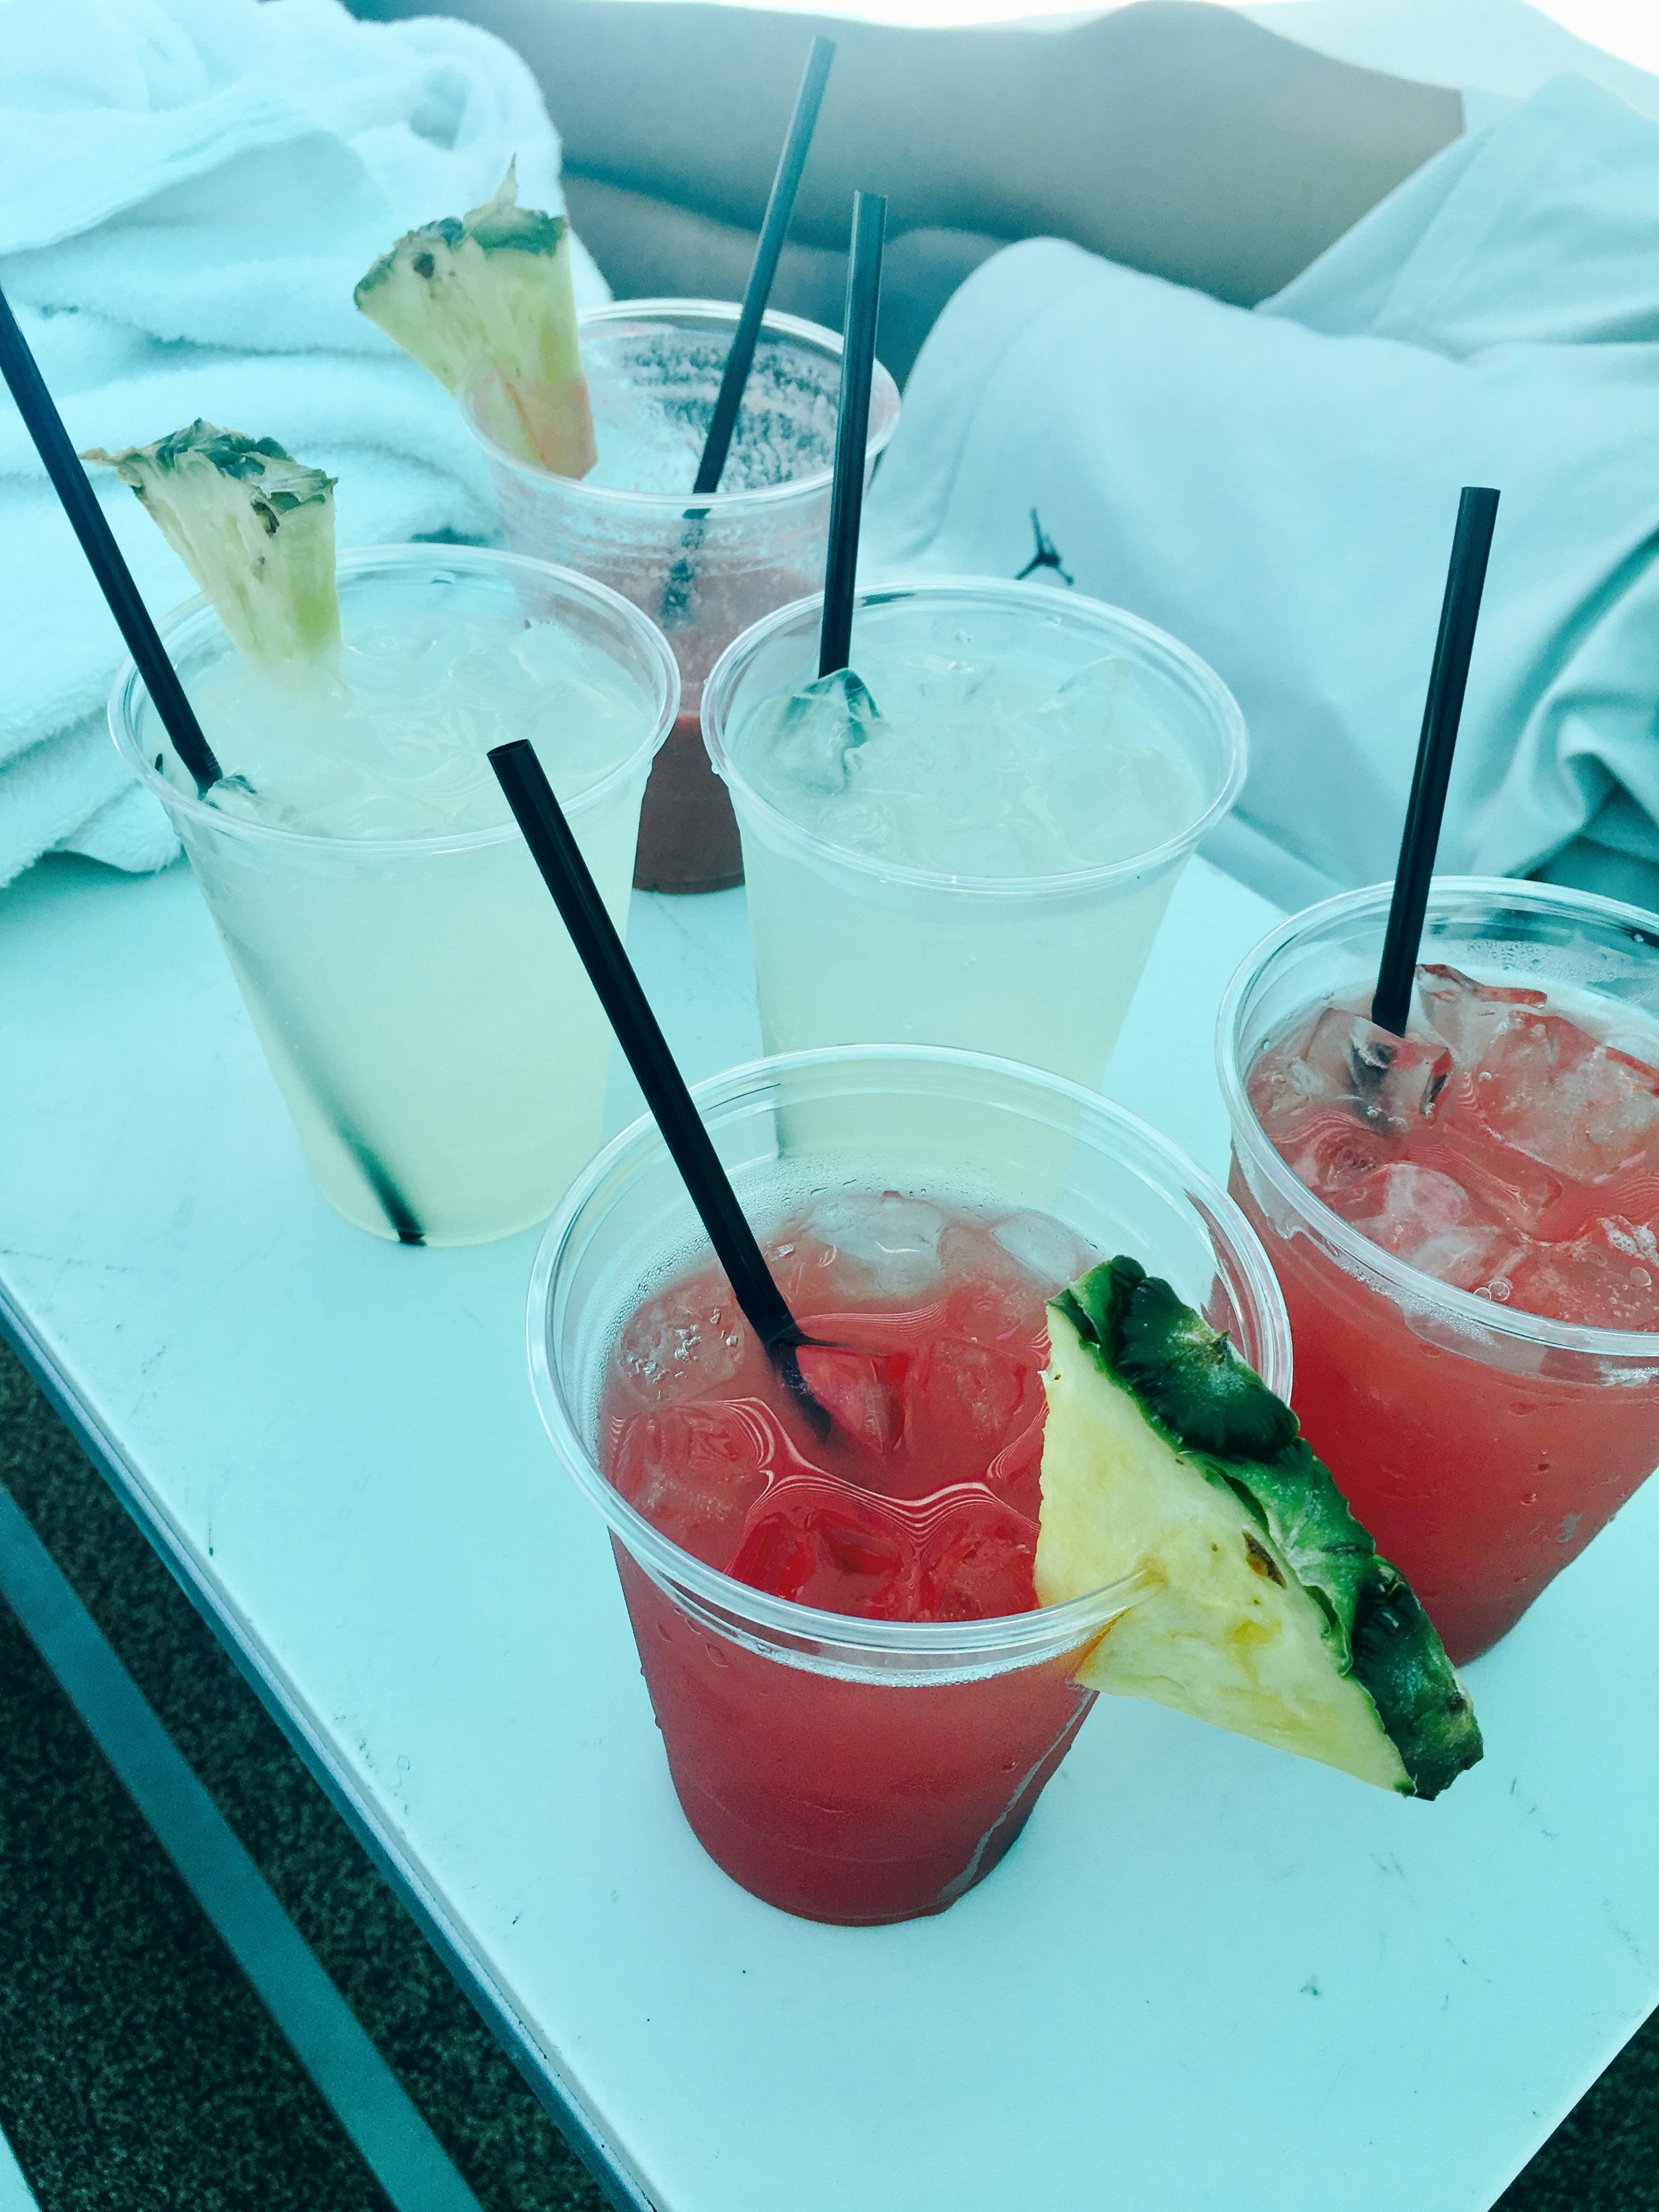 Fresh Watermelon juice topped with a pineapple slice and iced cold lemonade for hot days. YUM!